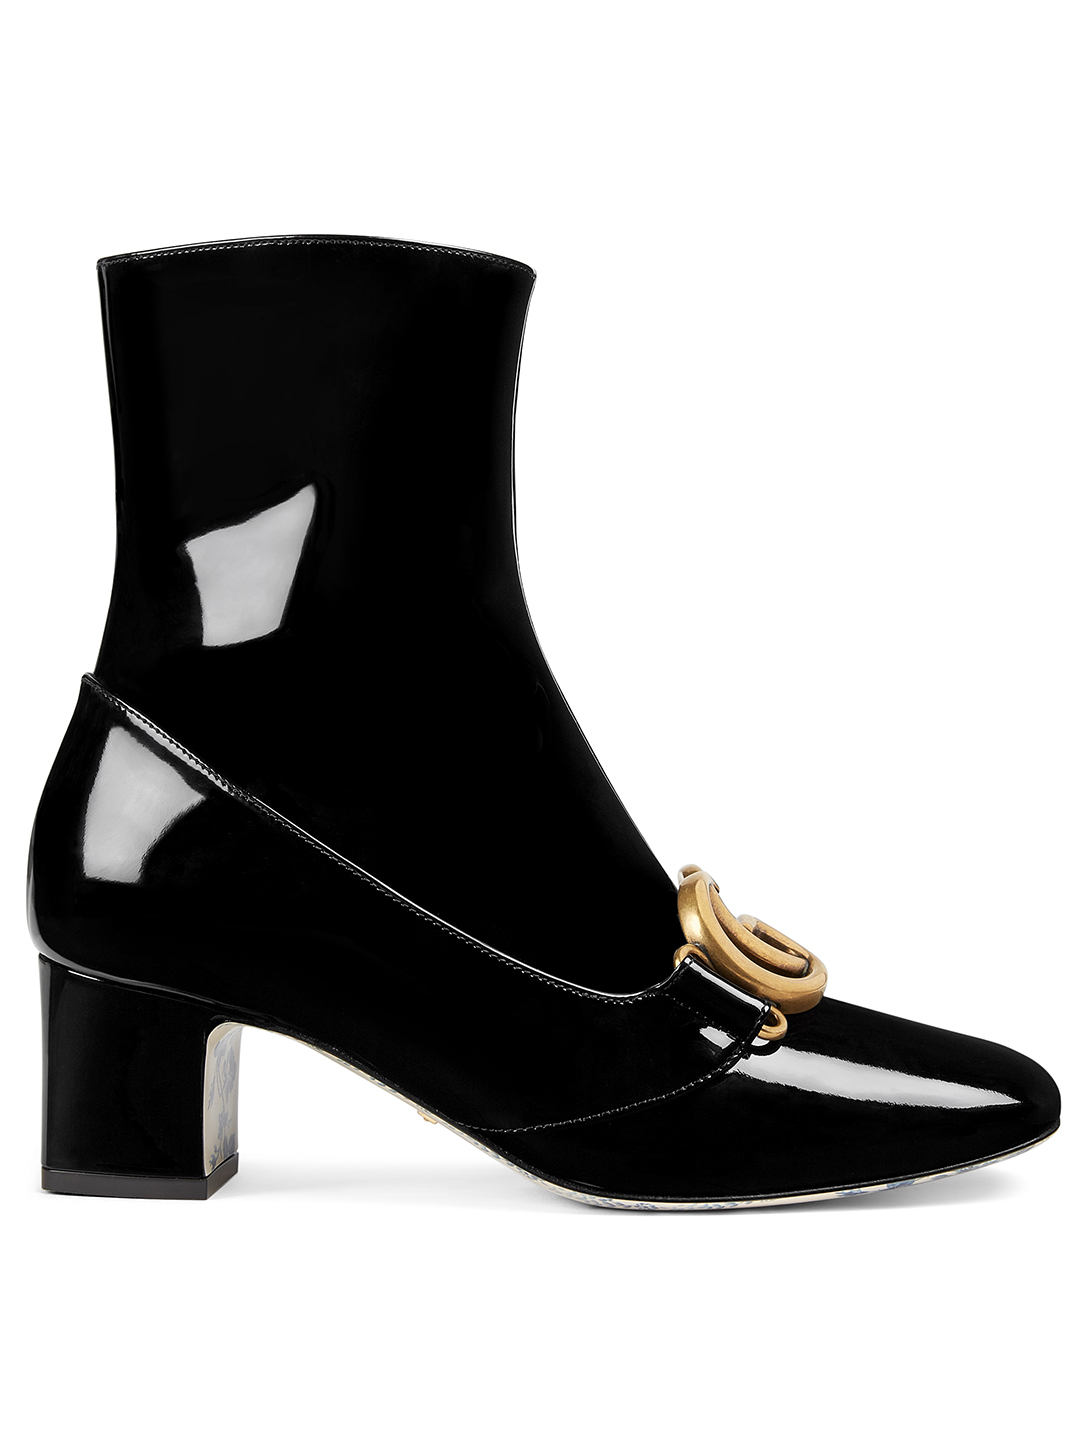 GUCCI Victoire Patent Leather Ankle Boots Designers Black